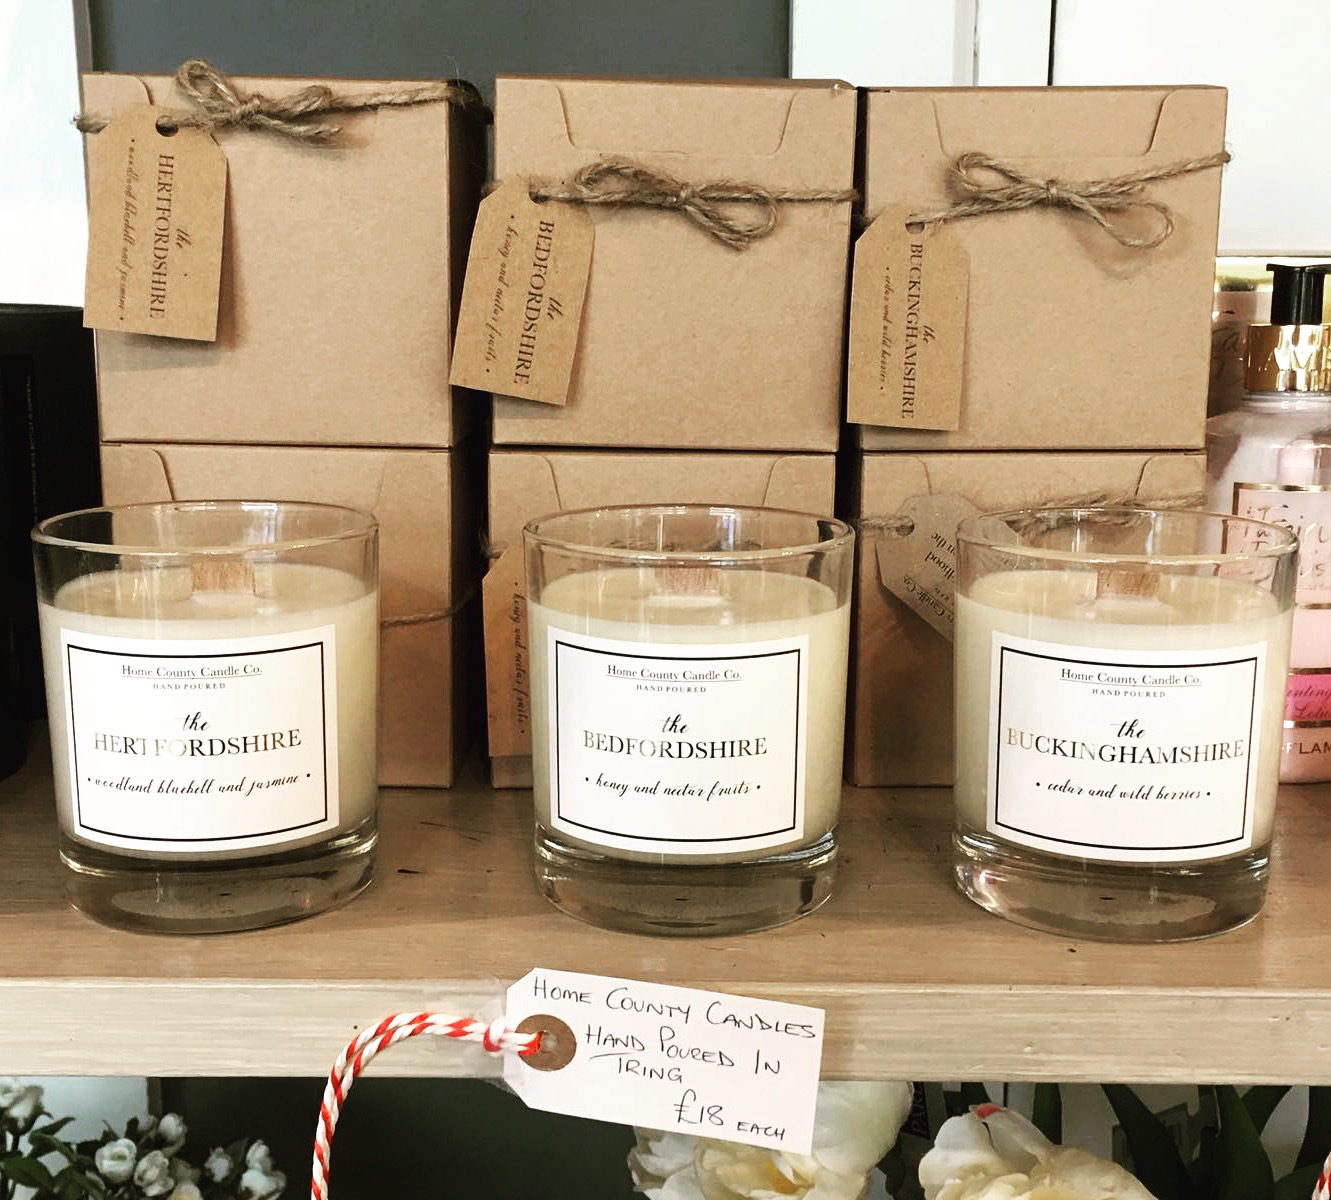 3 stand out moments of our first year in business - 1. Our first stockist…On the same day we launched our website we popped into The Market House in Tring with the first batch of our little candle babies. I was full of nerves but Oli was like a proud Dad ready to show the world his brood. Suzanne and David totally got the concept and placed their first order the next day. This was a huge confidence boost for us, knowing that our products were fit for a shop a beautiful as The Market House definitely set us on the right path for our first year. We can't thank Suzanne and David enough, they've been hugely supportive throughout the year (as have all of our lovely stockists) and gave us our first new-stockist-happy-dance!2. Making it through Christmas alive…After our first ever show (Herts County Show in May) we knew the way to make our first year a success would be to spread the word as much as possible and meet as many local people as we could. We booked a few fantastic summer shows and decided we'd book a different Christmas show every weekend from 1st November - 22nd December. Both working full time then as well as running the business it was touch and go whether we'd make it - but we did! Oli left his job to give the business his full attention and with lots of long days, even longer nights and Christmas spirit we made it out the other side.3. Our #SBS win…I've written about our SBS win recently (you can read all about it here) but having the belief of someone like Theo Paphitis is a huge deal to us. Getting that retweet and attending the SBS event this month has spurred us on an unbelievable amount, we can't wait to see where the SBS network will take us!